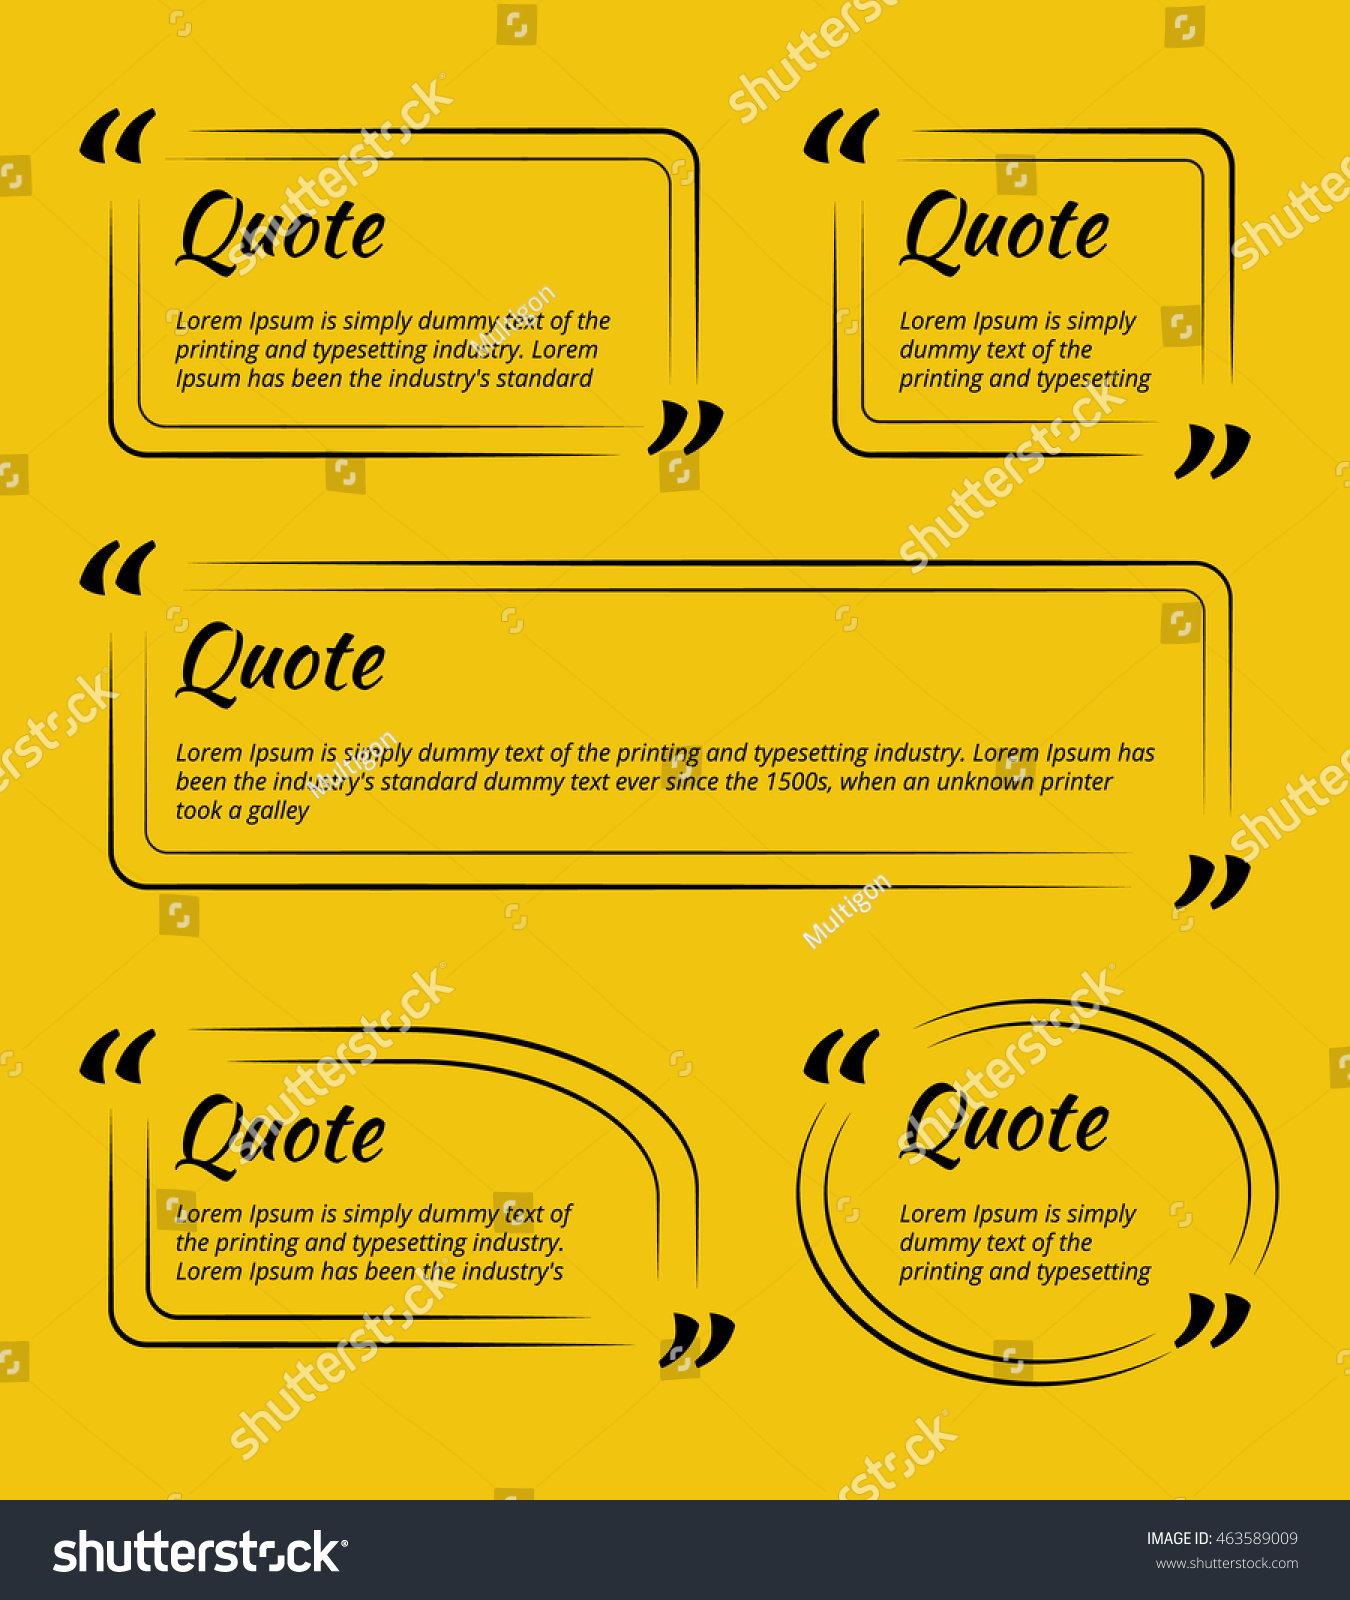 Set quote blank template business card stock illustration 463589009 set of quote blank template for business card paper sheet information text reheart Choice Image